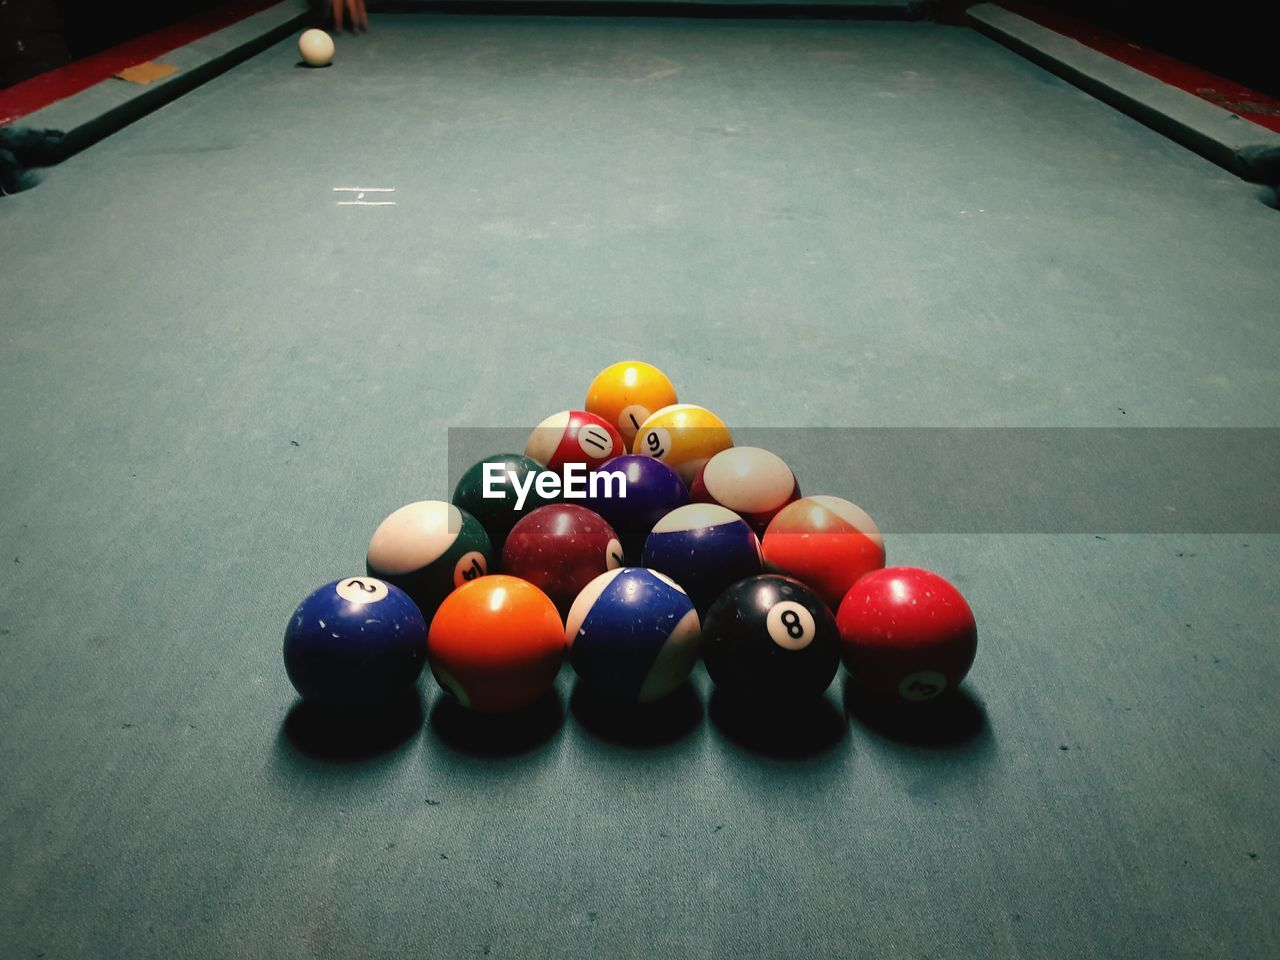 sport, pool ball, pool table, pool - cue sport, snooker ball, snooker, indoors, multi colored, table, sports equipment, arrangement, ball, leisure games, cue ball, no people, competition, pool cue, close-up, snooker and pool, day